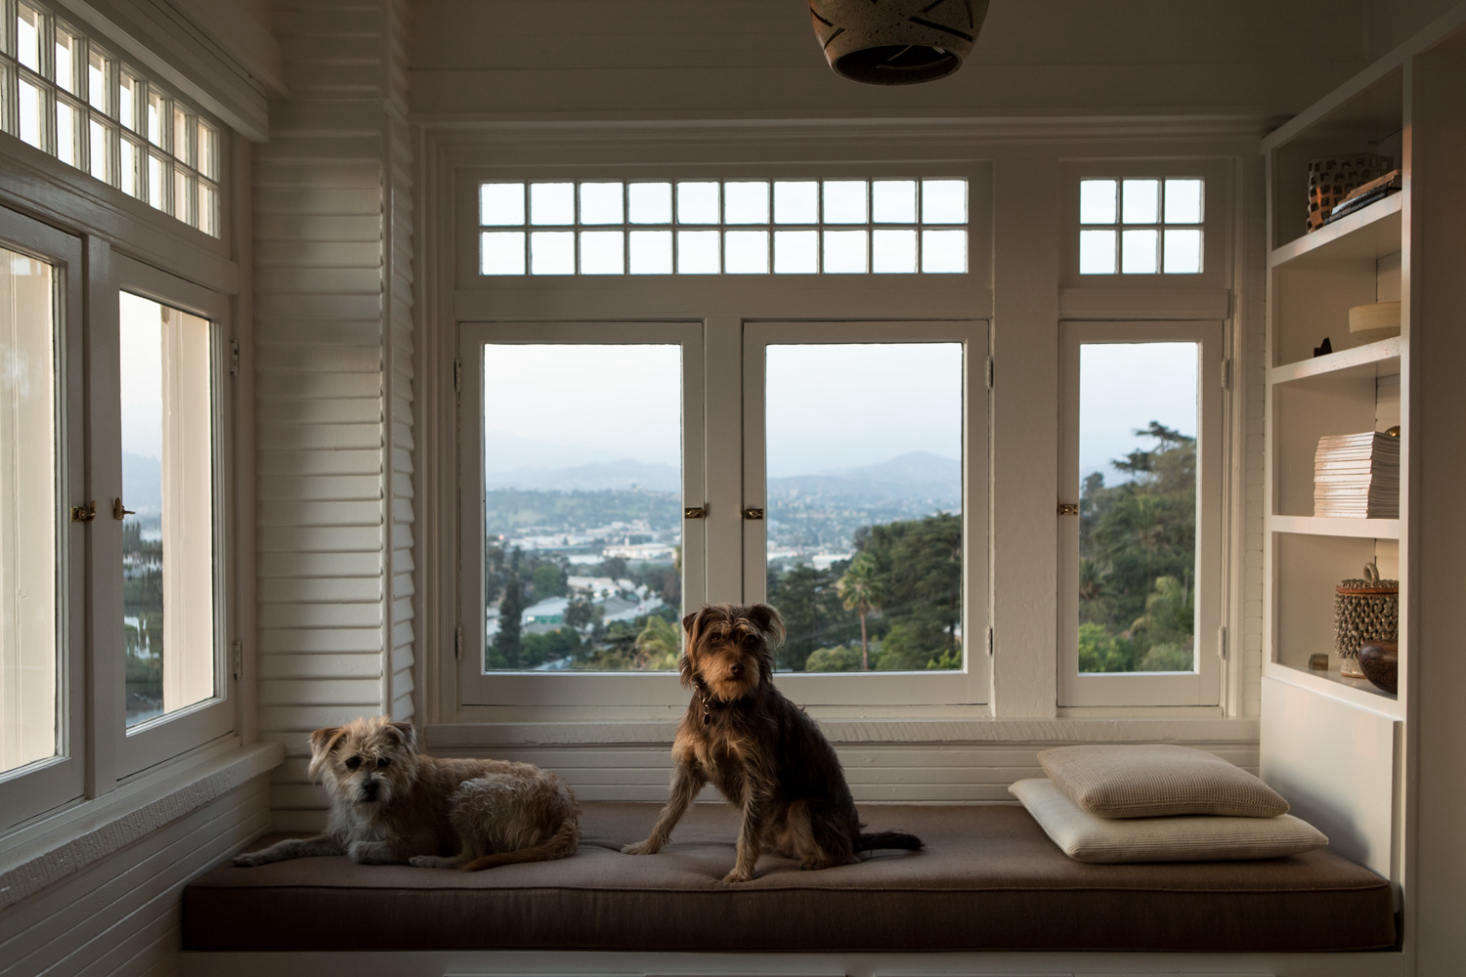 June and Fitz enjoying the daybed in the sunroom. All the leaded windows are original to the home. The ceramic pendant light is by Heather Levine.